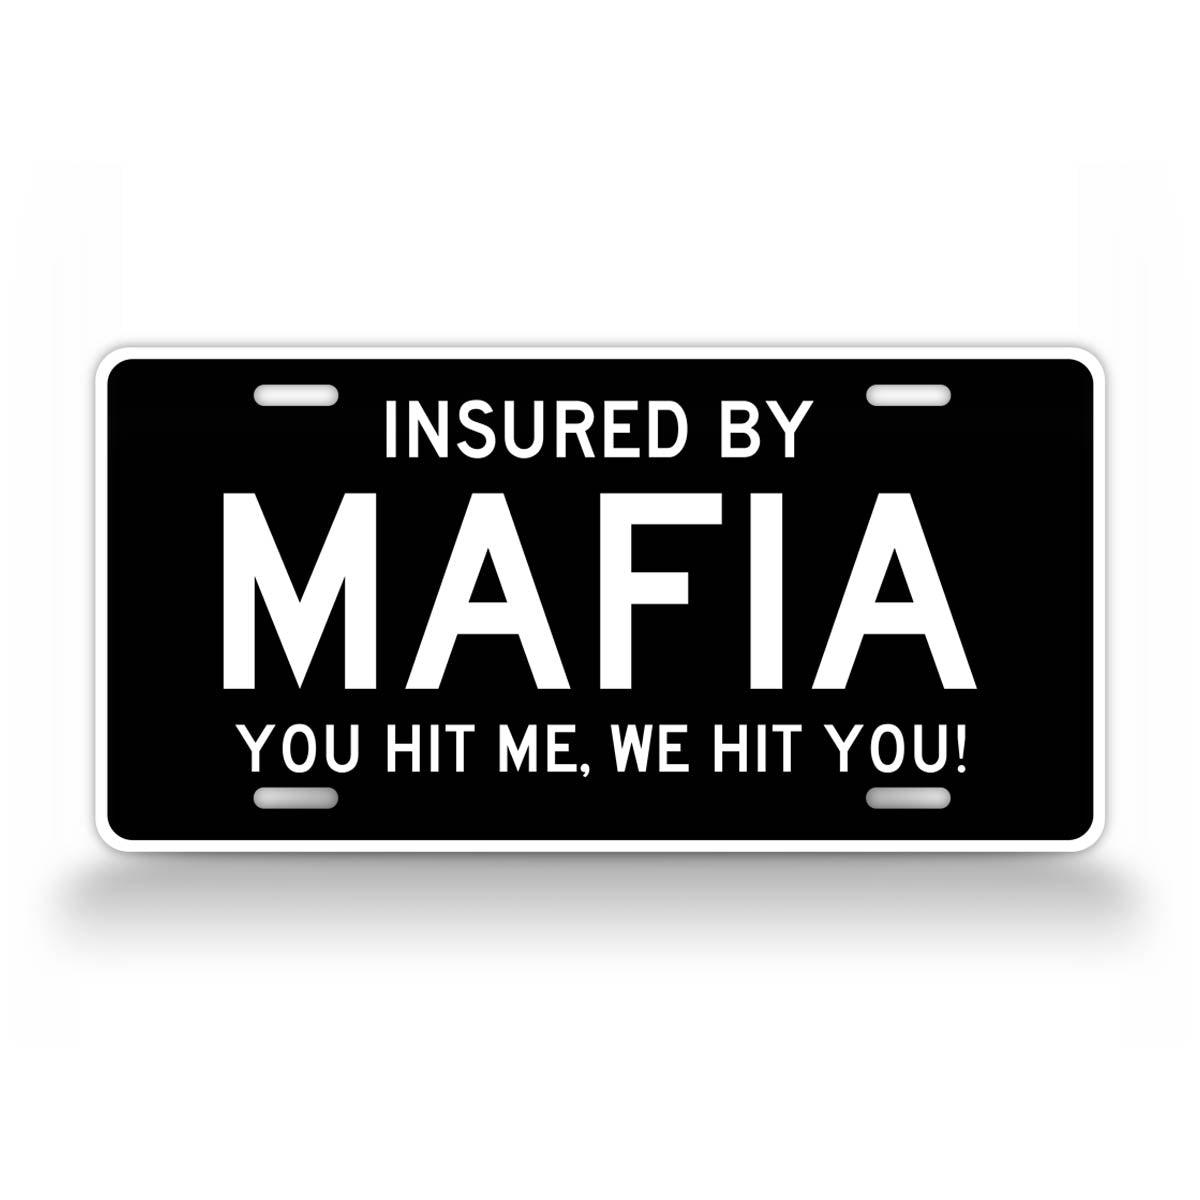 Insured By Mafia You Hit Me, We Hit You! Funny License Plate